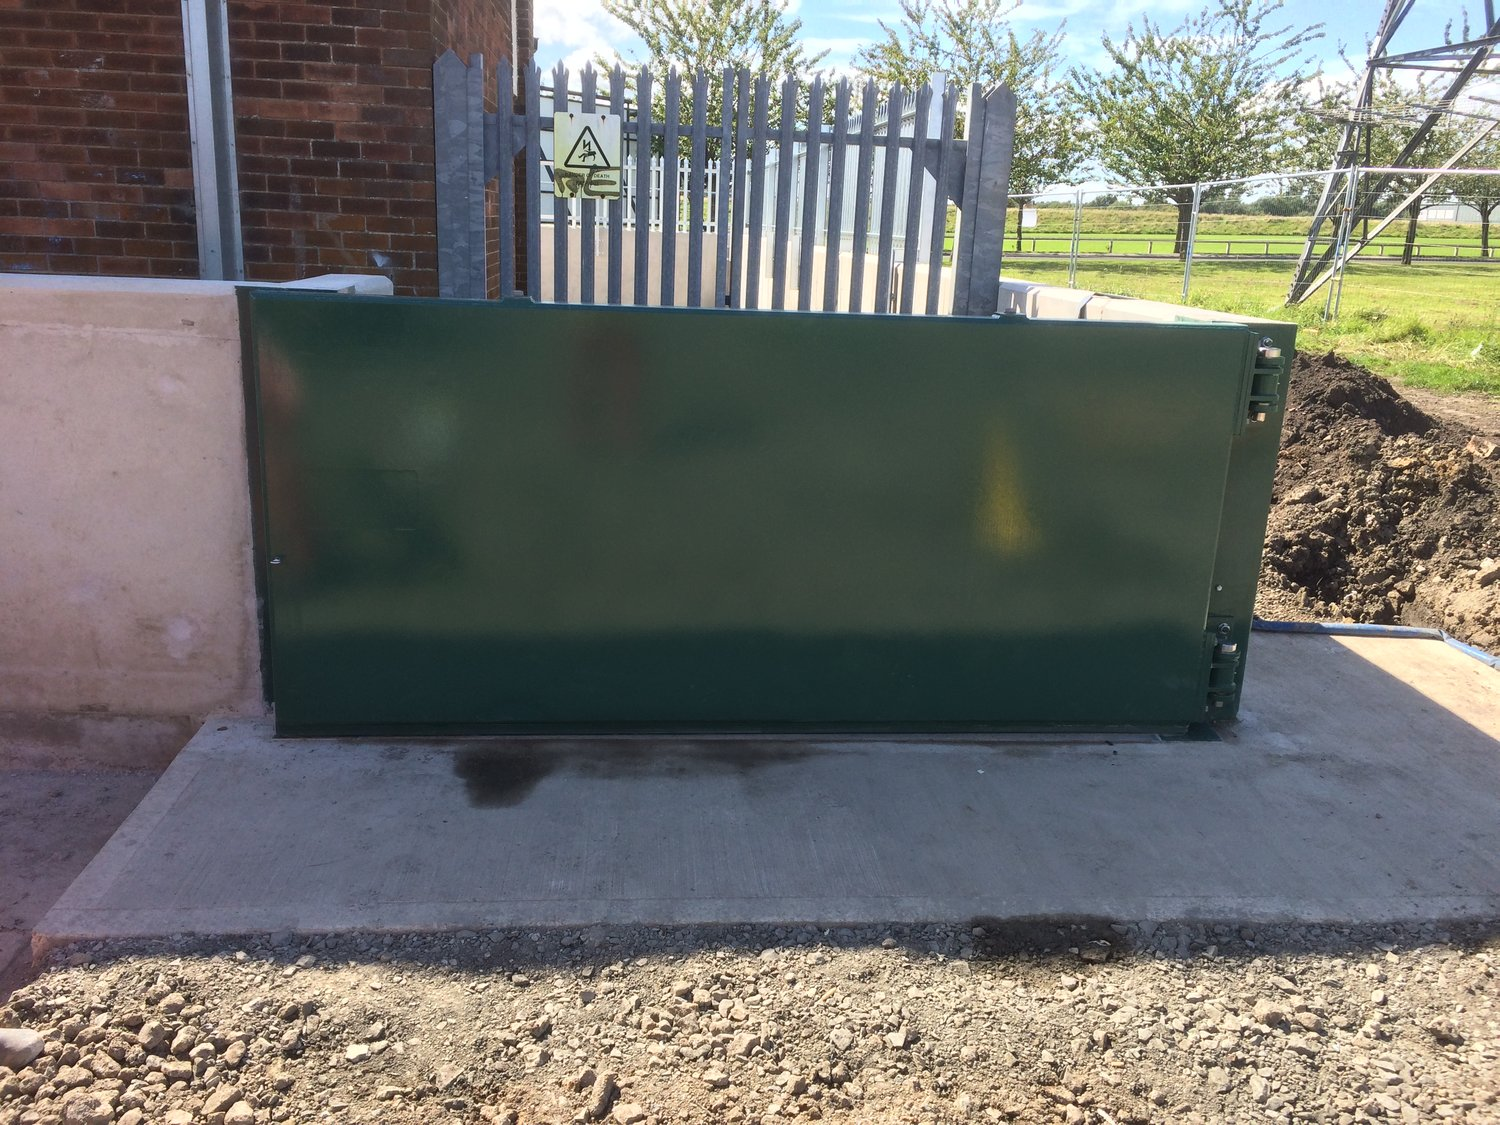 A single flood gate as the 1stdefence for protecting  a utility compound. Preventing any interruption of electricity  supply during flooding